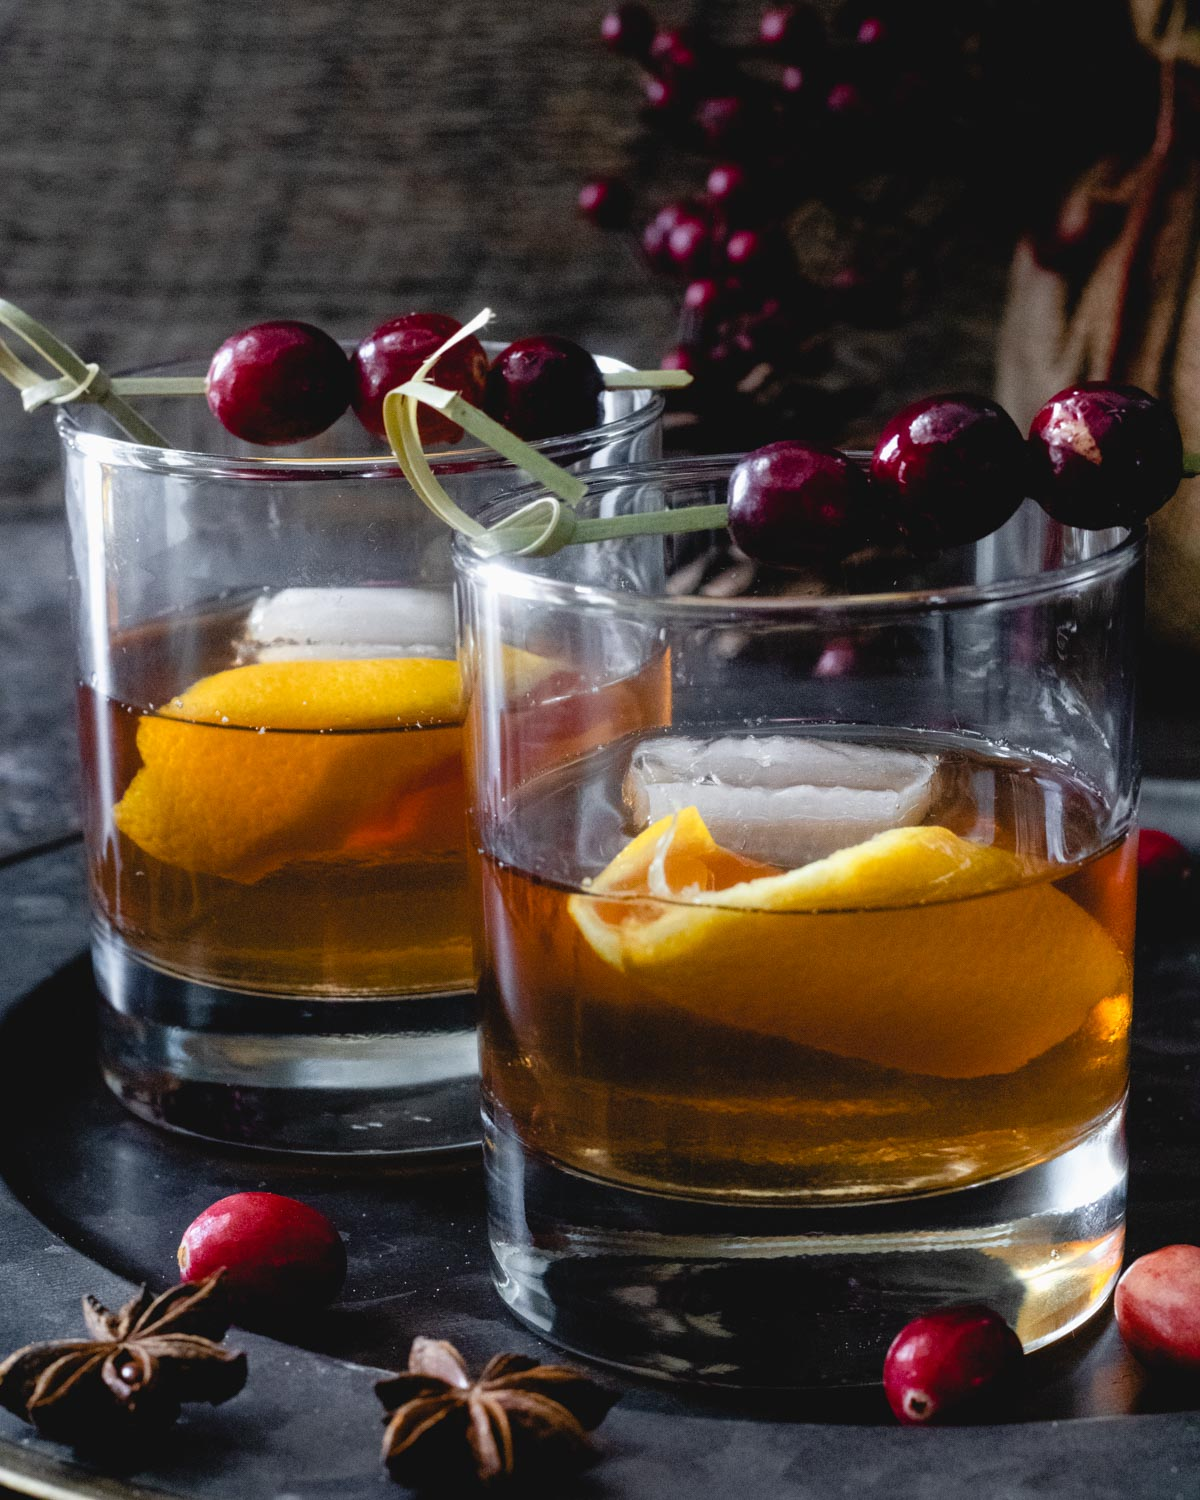 Two cranberry old fashioneds on a tray, with orange peel in glass and cocktail picks with cranberries.